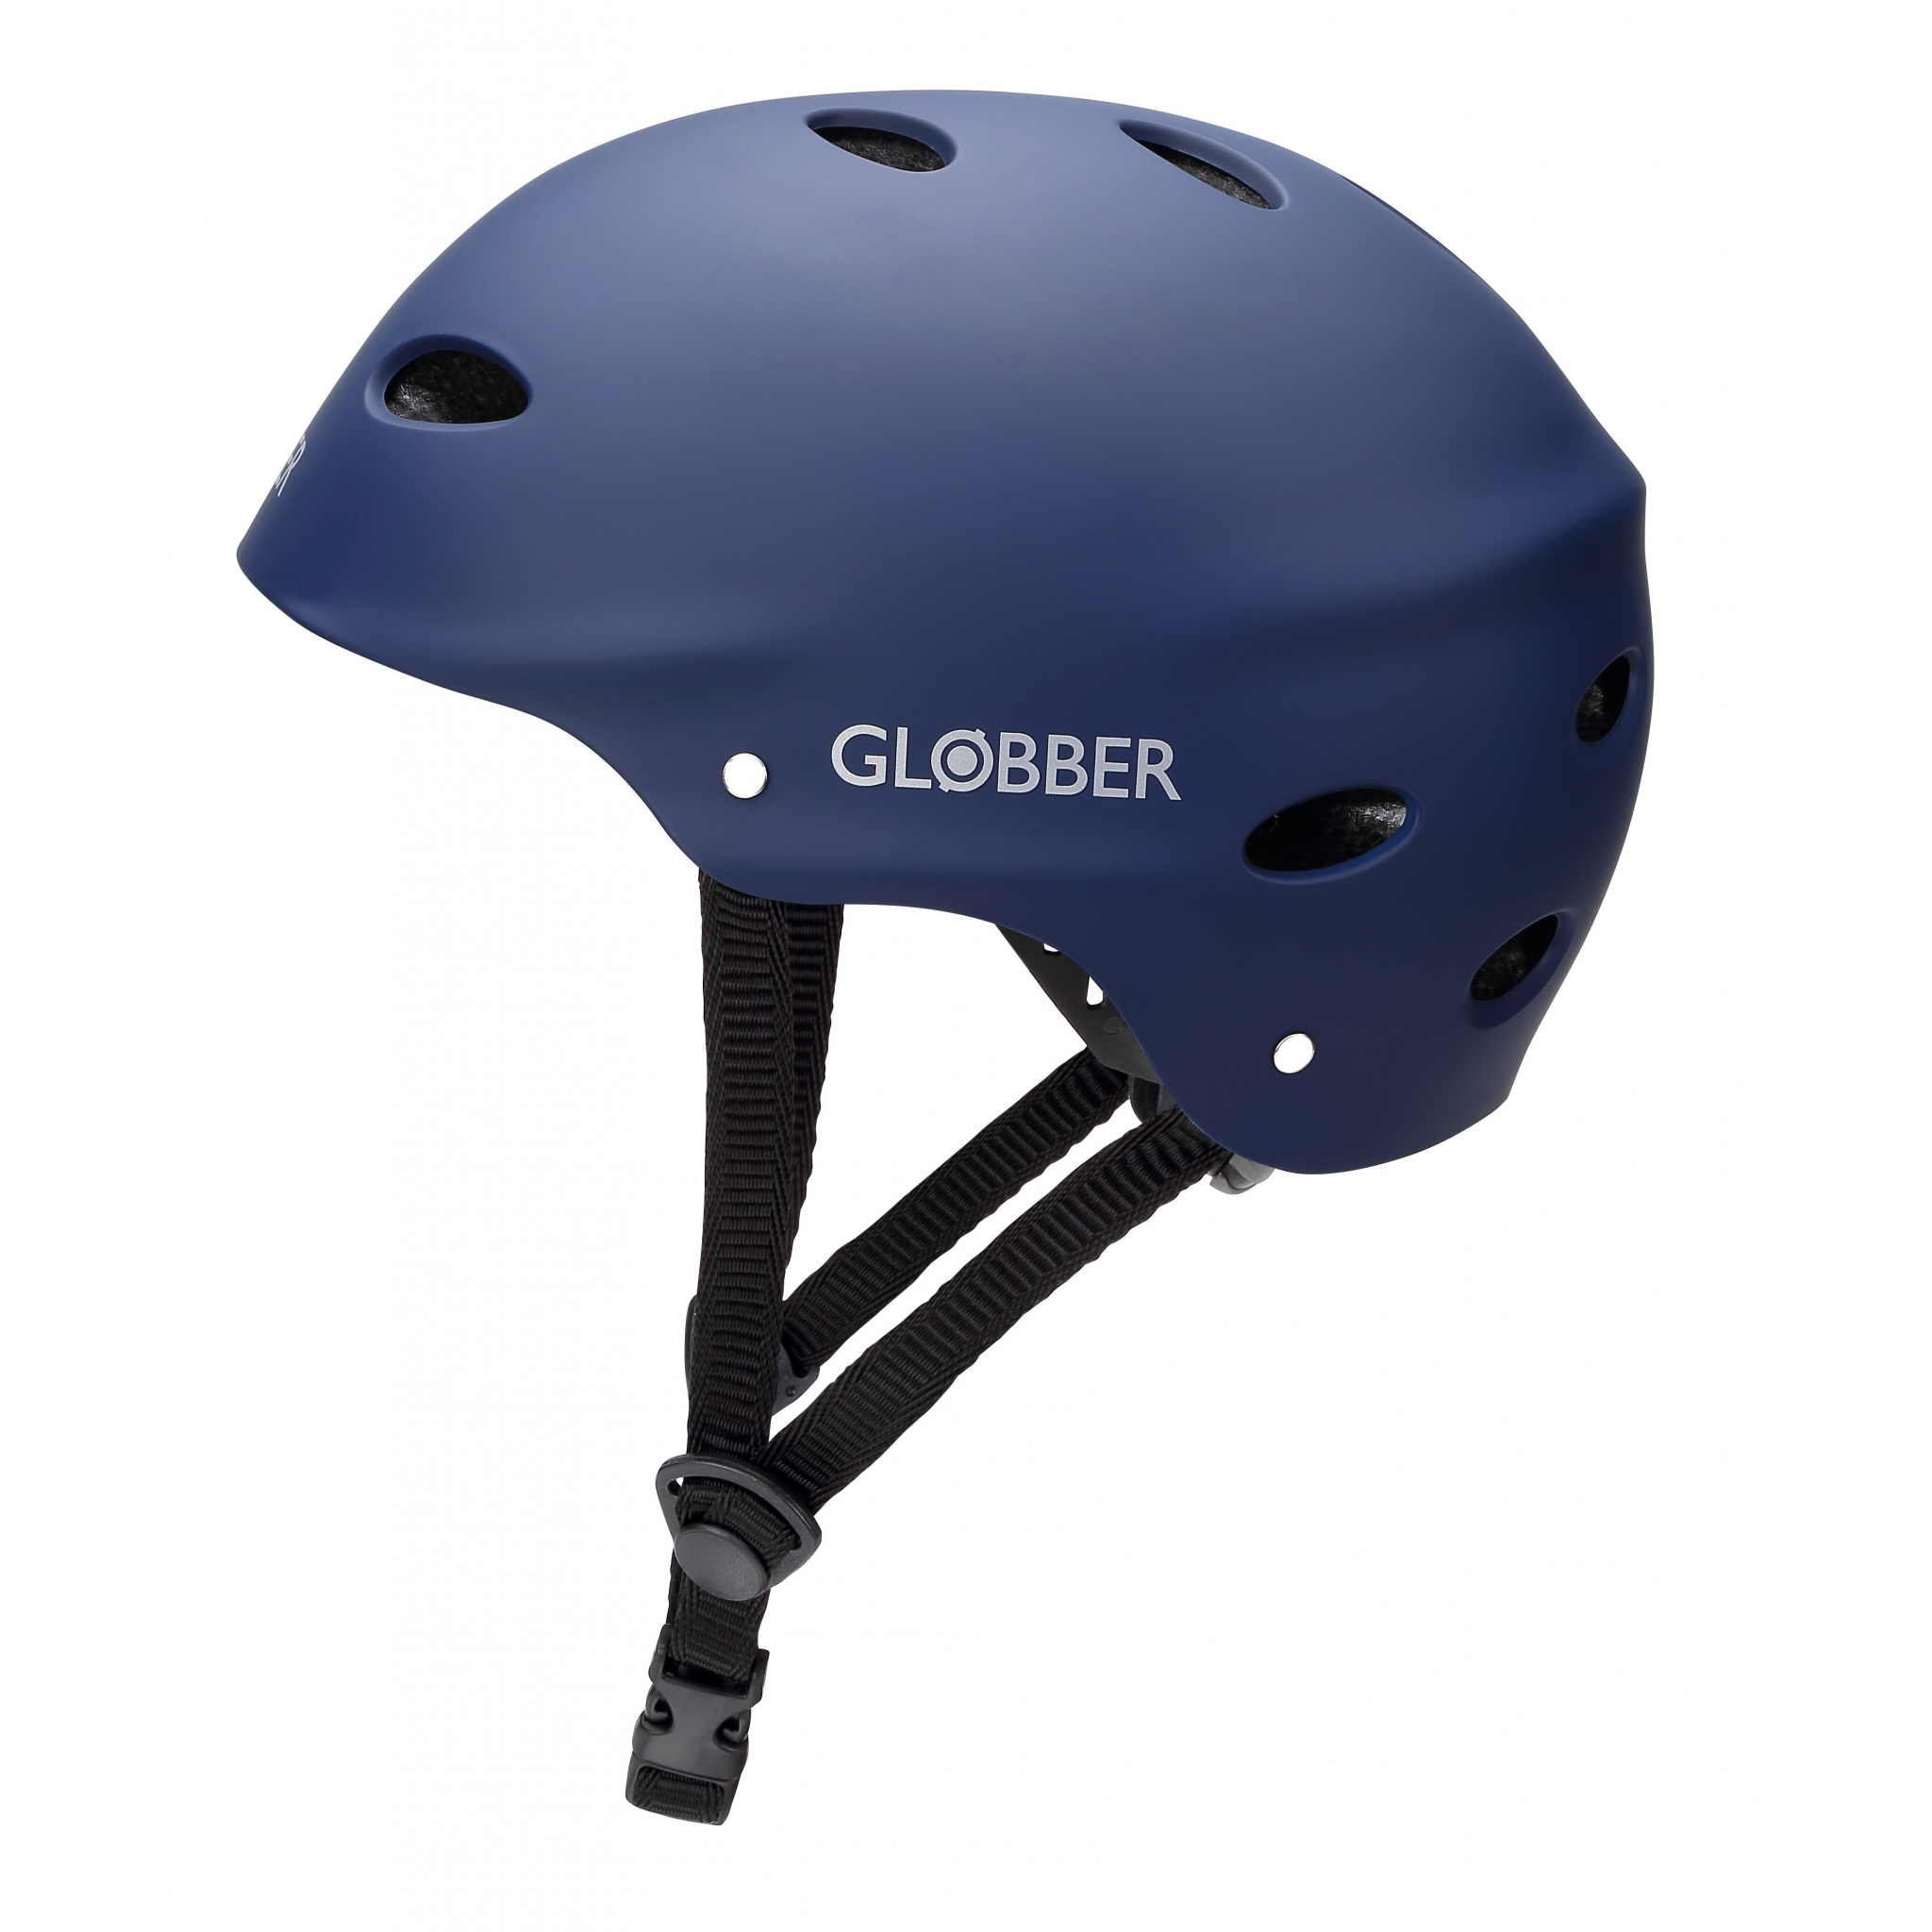 scooter helmet for adults - Globber 4